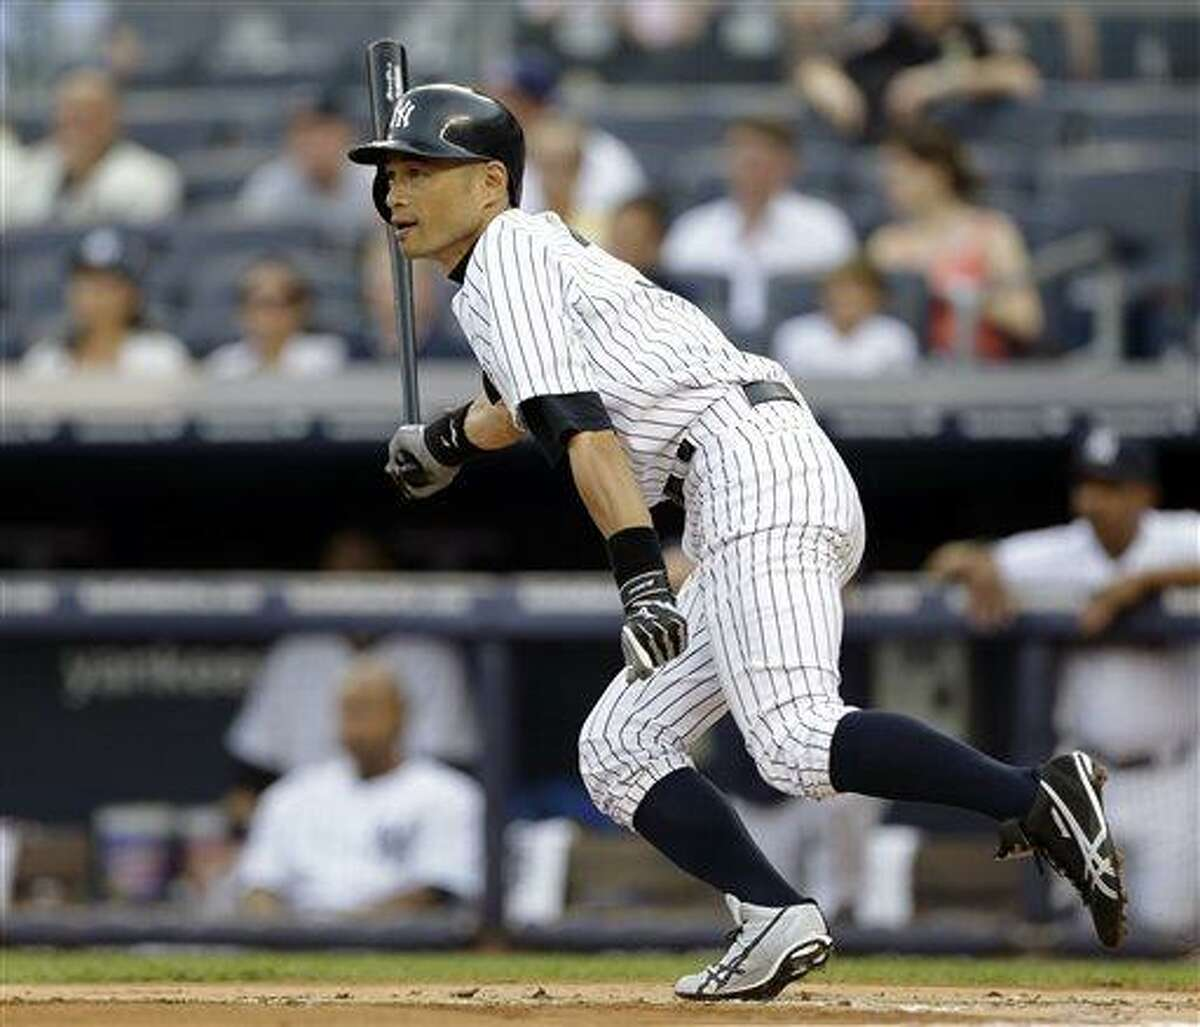 New York Yankees' Ichiro Suzuki follows through on a base hit off Texas Rangers starting pitcher Yu Darvish in the first inning of a baseball game Tuesday, June 25, 2013, in New York. (AP Photo/Kathy Willens)